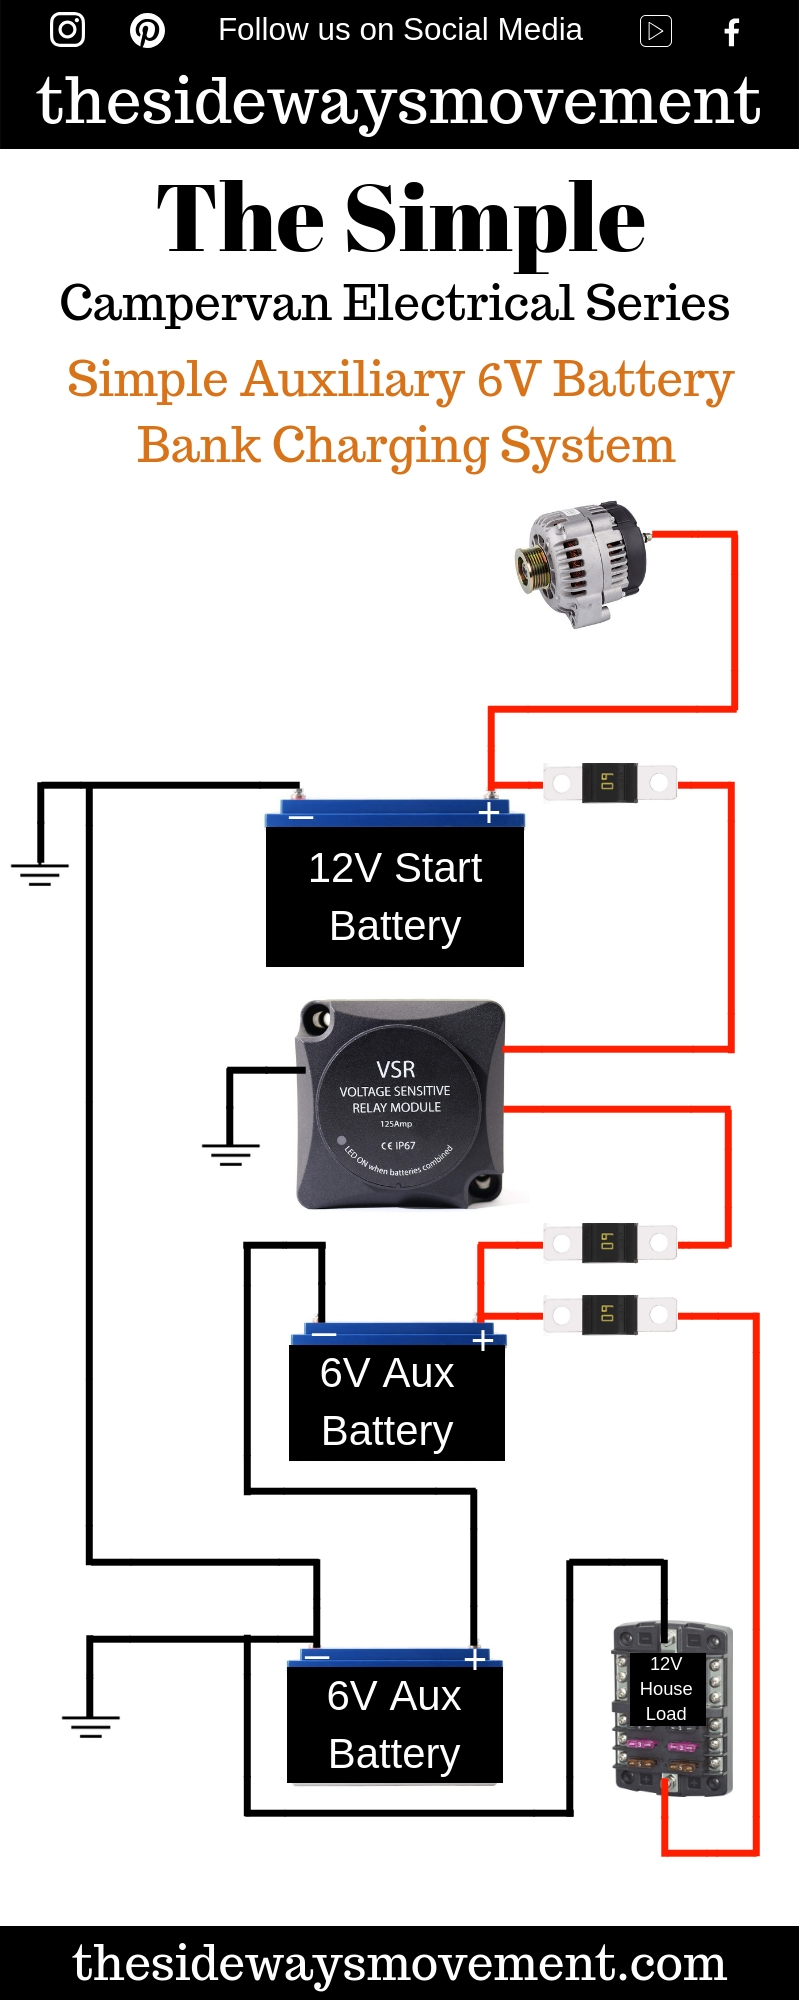 Charging 6 Volt Batteries In Series With 12 Charger And Parallel Wiring Battery Bank Diagram